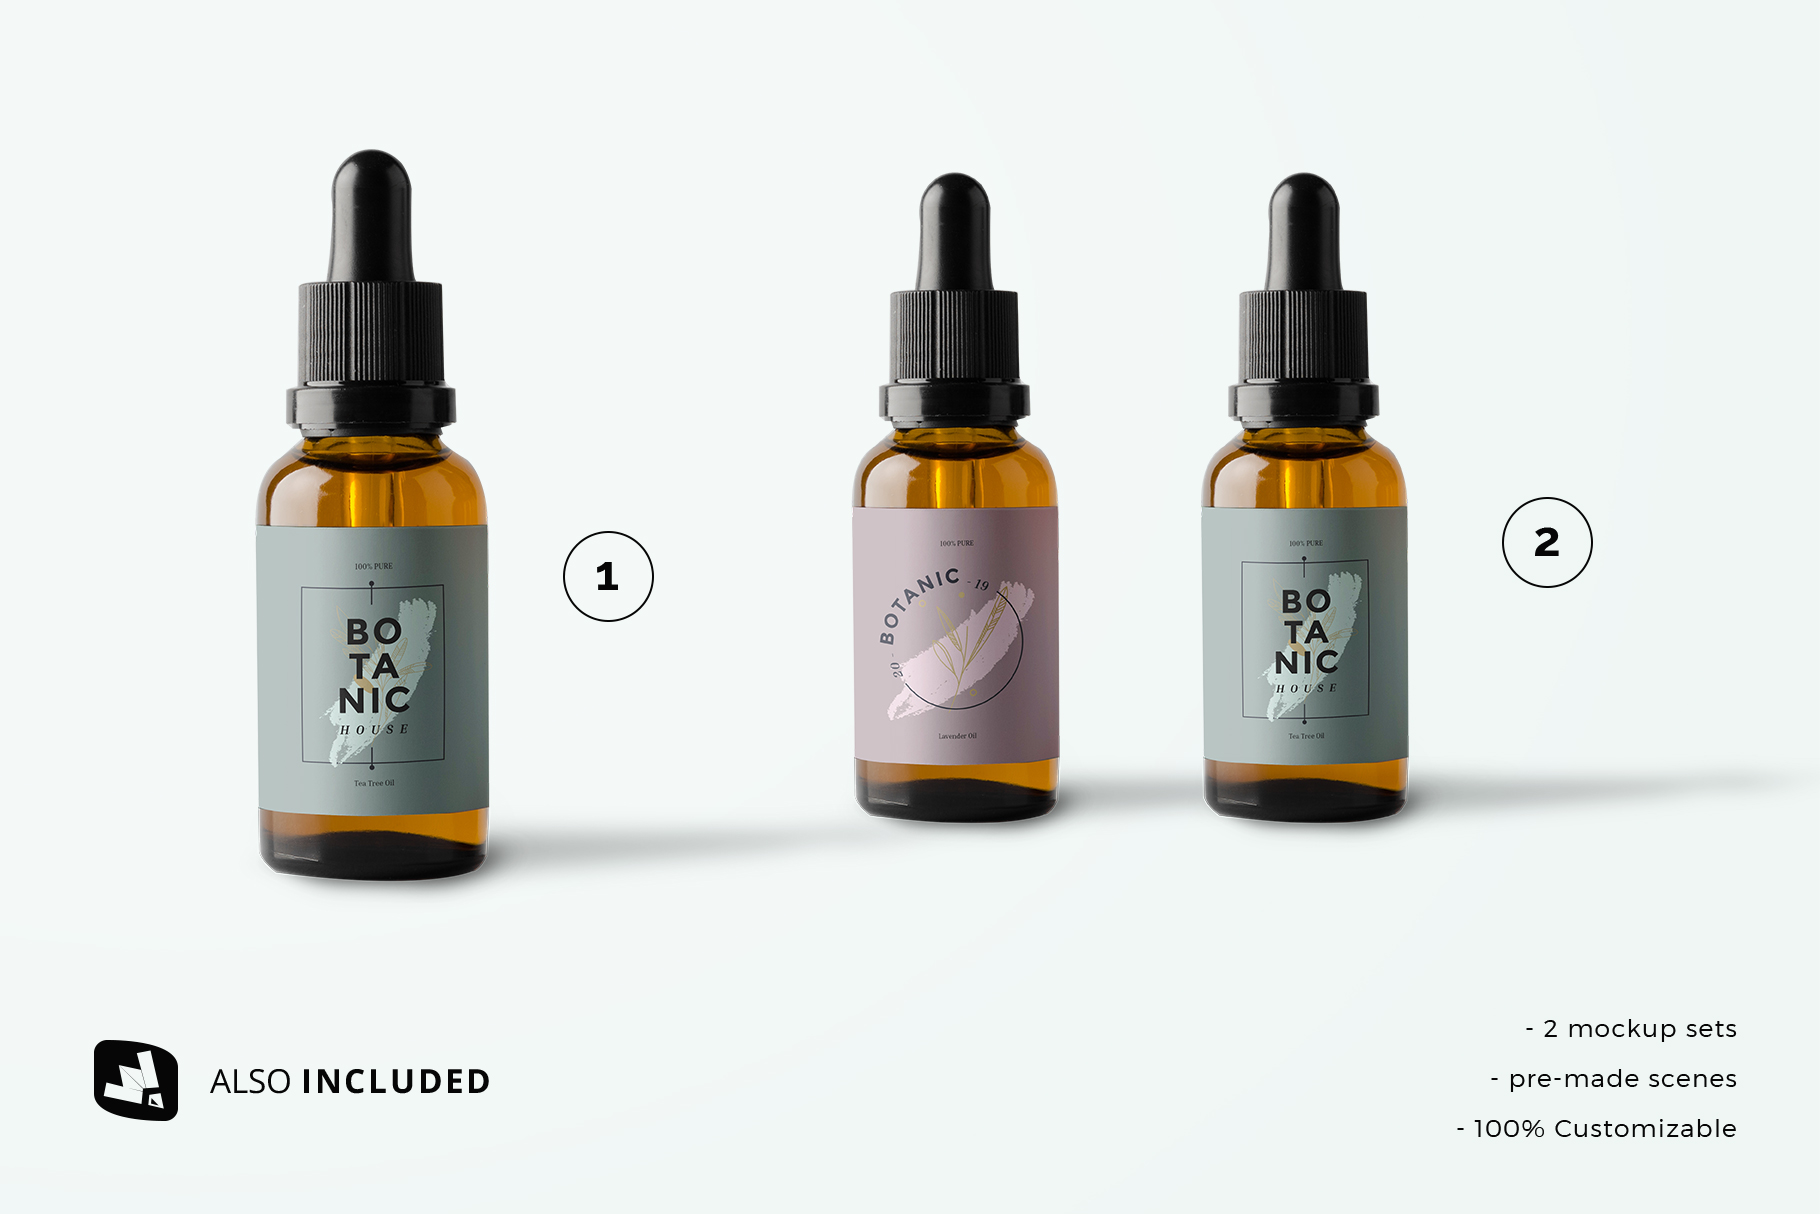 files included in the essential oil bottle packaging mockup